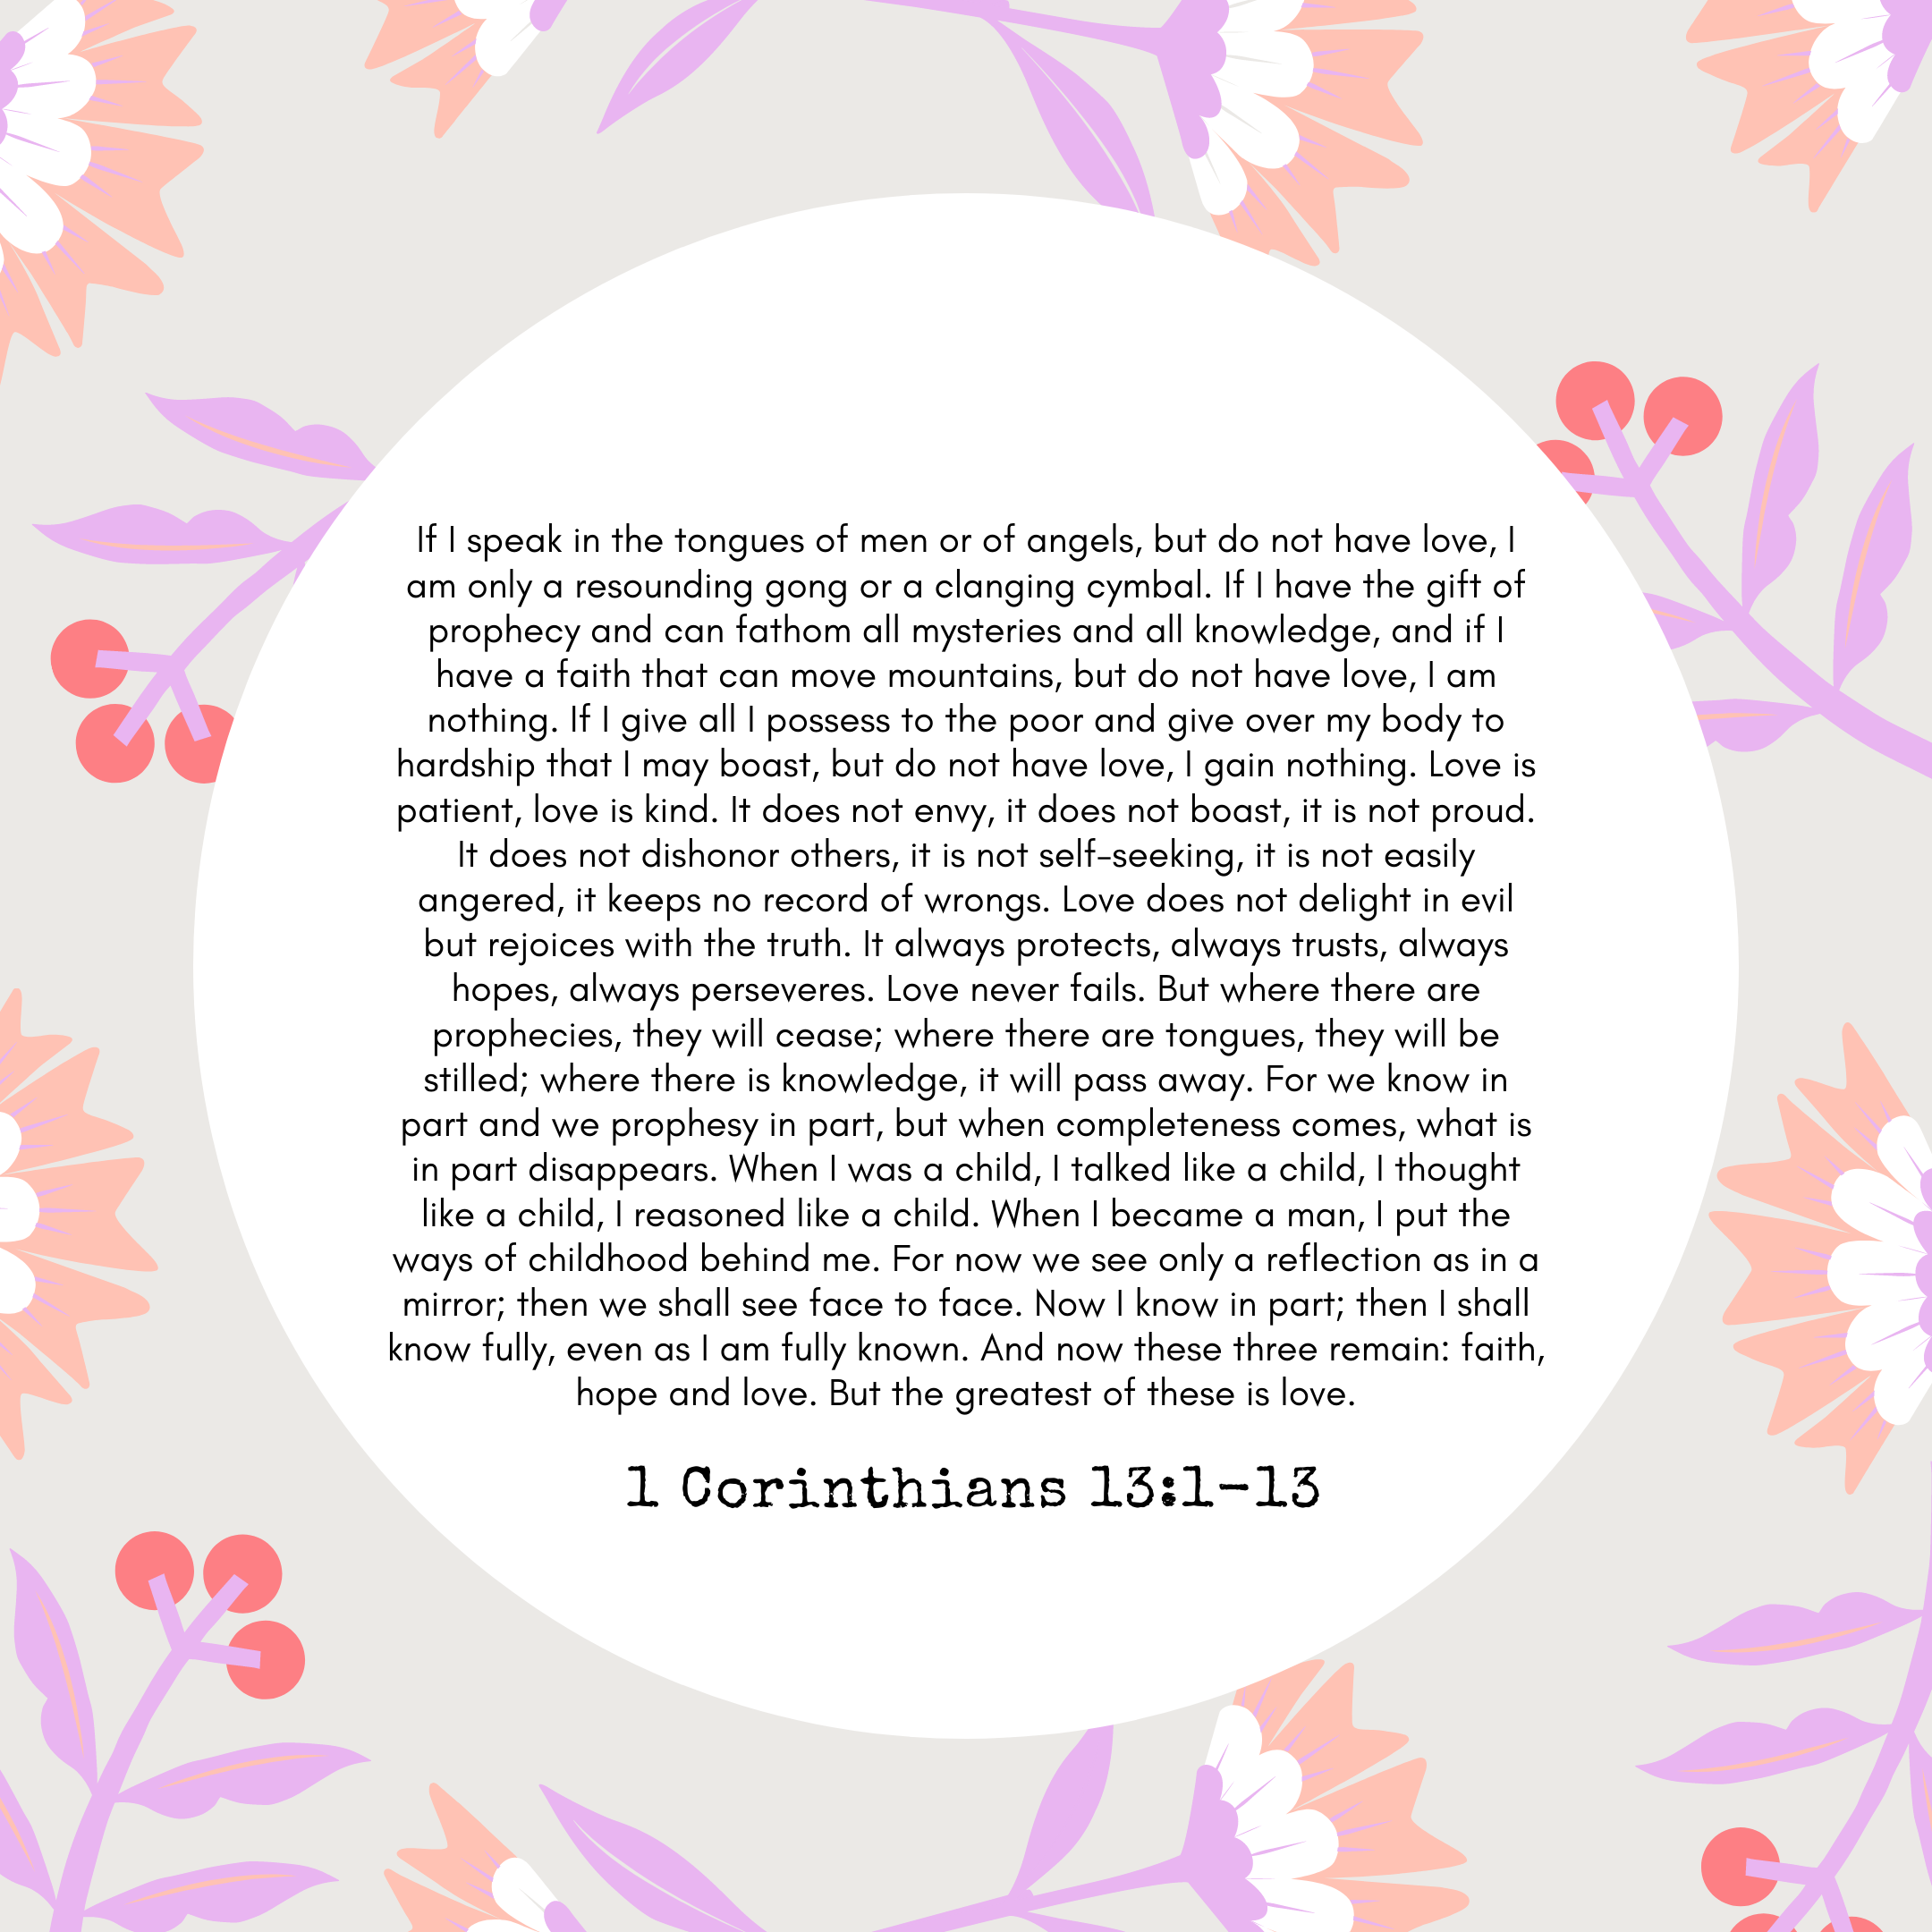 1 Corinthians 13:1-13 If I speak in the tongues of men or of angels, but do not have love, I am only a resounding gong or a clanging cymbal. If I have the gift of prophecy and can fathom all mysteries and all knowledge, and if I have a faith that can move mountains, but do not have love, I am nothing. If I give all I possess to the poor and give over my body to hardship that I may boast, but do not have love, I gain nothing. Love is patient, love is kind. It does not envy, it does not boast, it is not proud. It does not dishonor others, it is not self-seeking, it is not easily angered, it keeps no record of wrongs. Love does not delight in evil but rejoices with the truth. It always protects, always trusts, always hopes, always perseveres. Love never fails. But where there are prophecies, they will cease; where there are tongues, they will be stilled; where there is knowledge, it will pass away. For we know in part and we prophesy in part, but when completeness comes, what is in part disappears. When I was a child, I talked like a child, I thought like a child, I reasoned like a child. When I became a man, I put the ways of childhood behind me. For now we see only a reflection as in a mirror; then we shall see face to face. Now I know in part; then I shall know fully, even as I am fully known. And now these three remain: faith, hope and love. But the greatest of these is love.